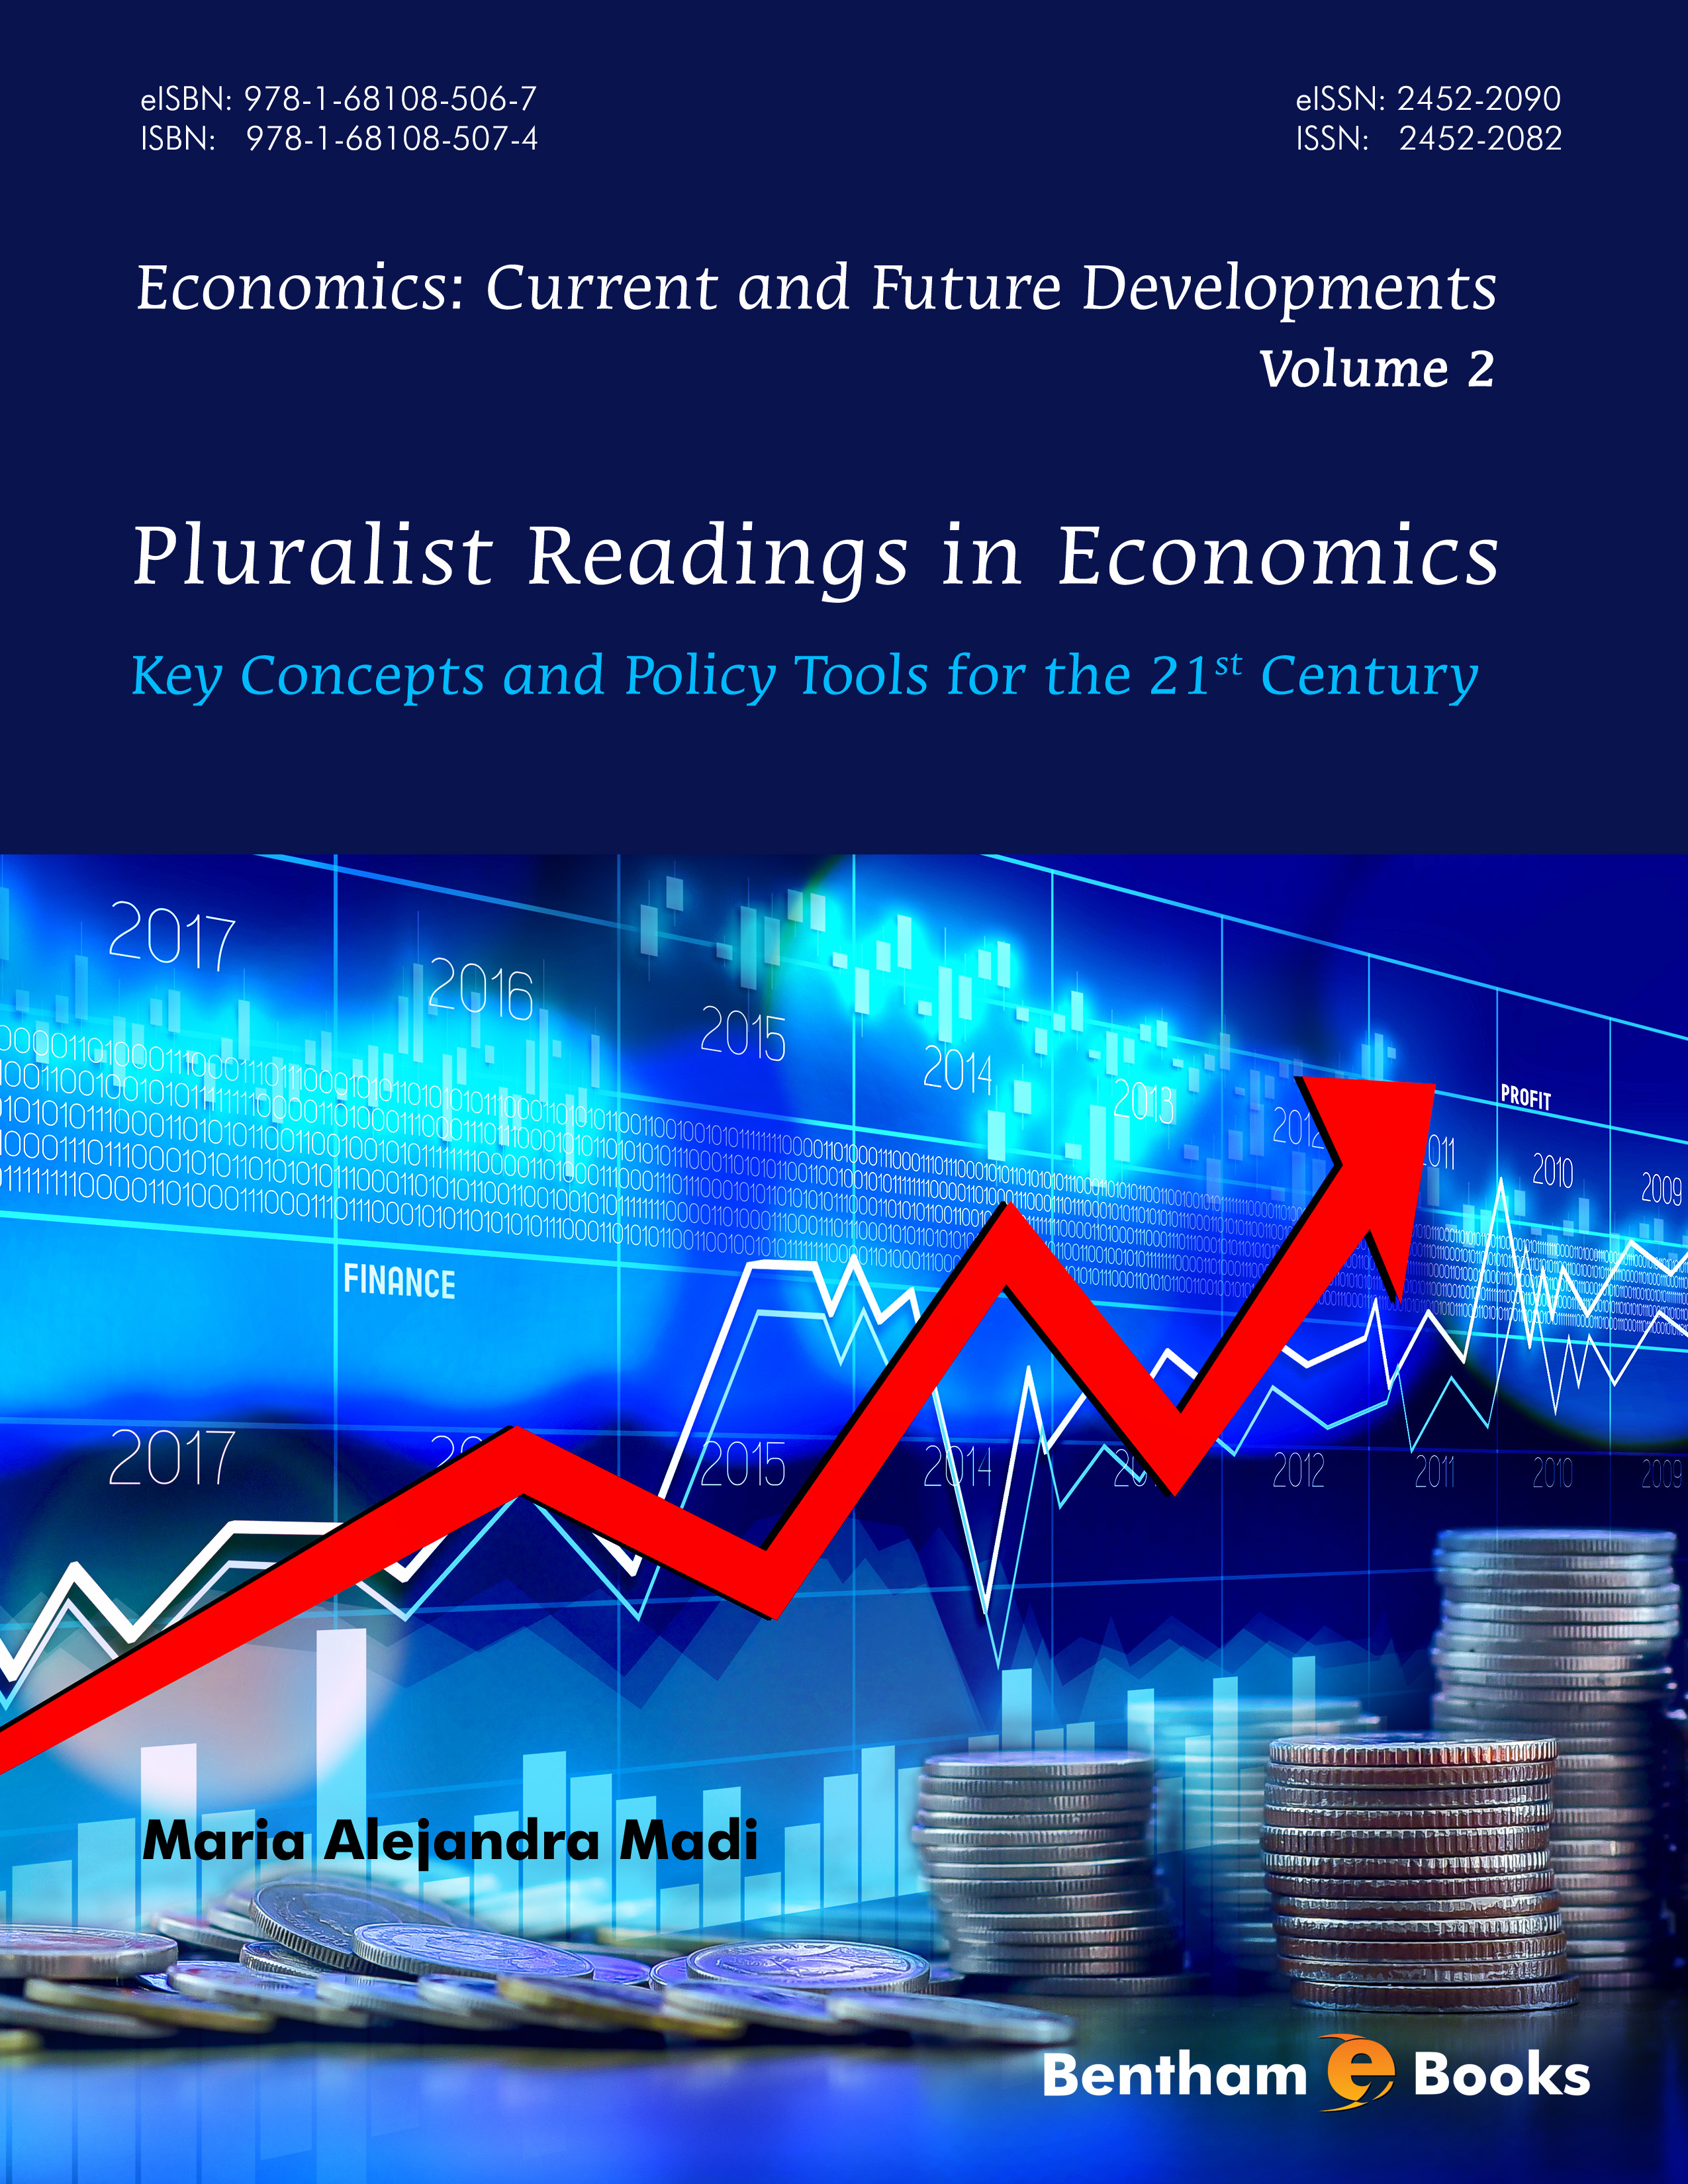 Pluralist Readings in Economics: Key Concepts and Policy Tools for the 21 Century